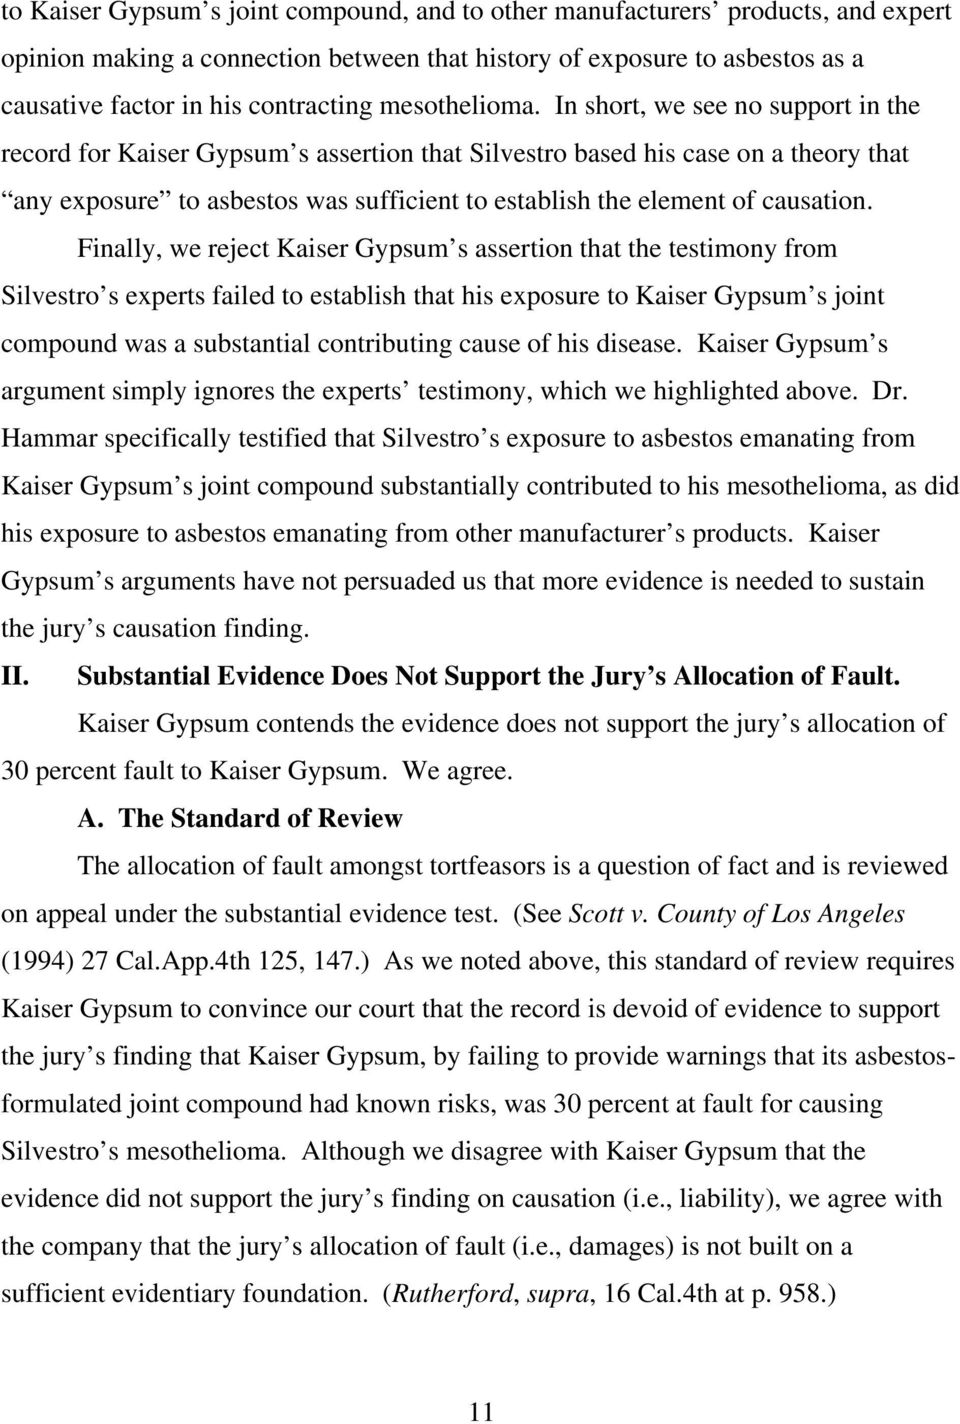 In short, we see no support in the record for Kaiser Gypsum s assertion that Silvestro based his case on a theory that any exposure to asbestos was sufficient to establish the element of causation.